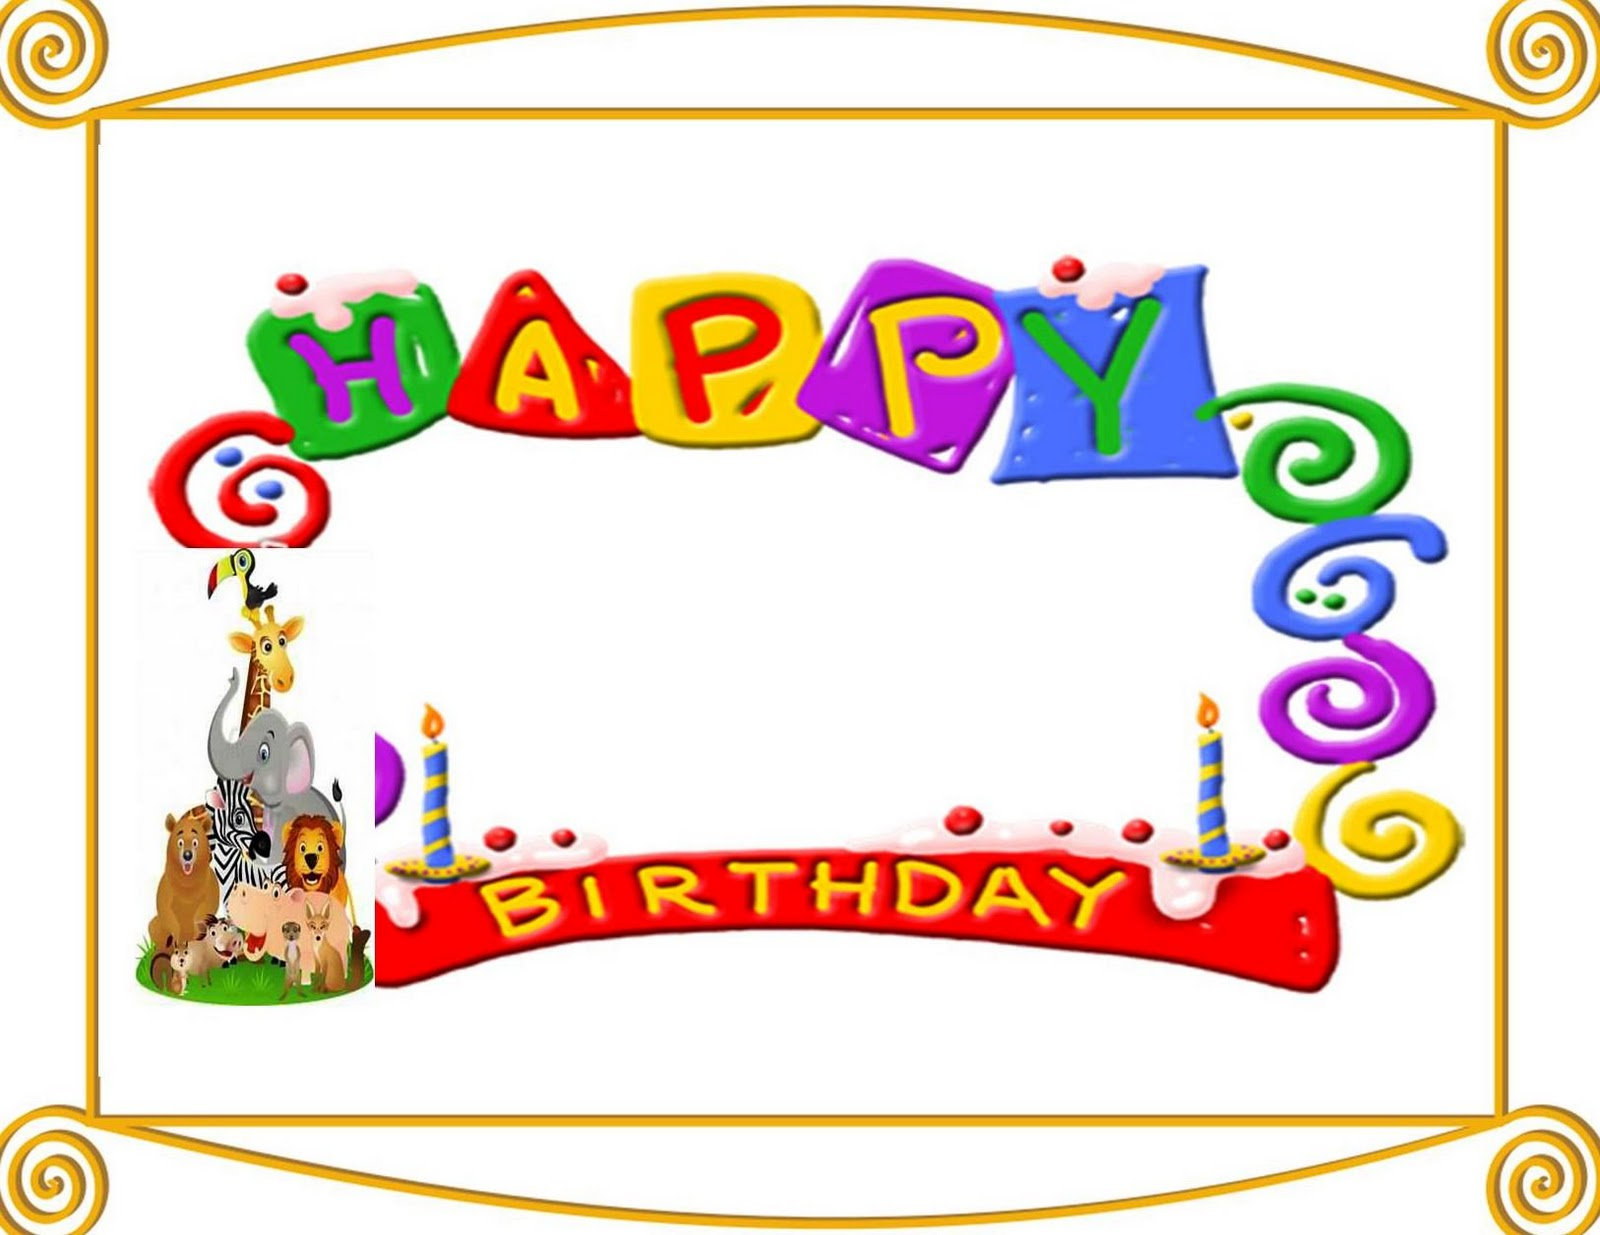 clipart of birthday cards ; 5ccb16d56cbcb8eb84b0fefca7e03168_happy-birthday-border-2-free-clip-art-images-clipartpost-happy-birthday-card-clipart-free_1600-1235